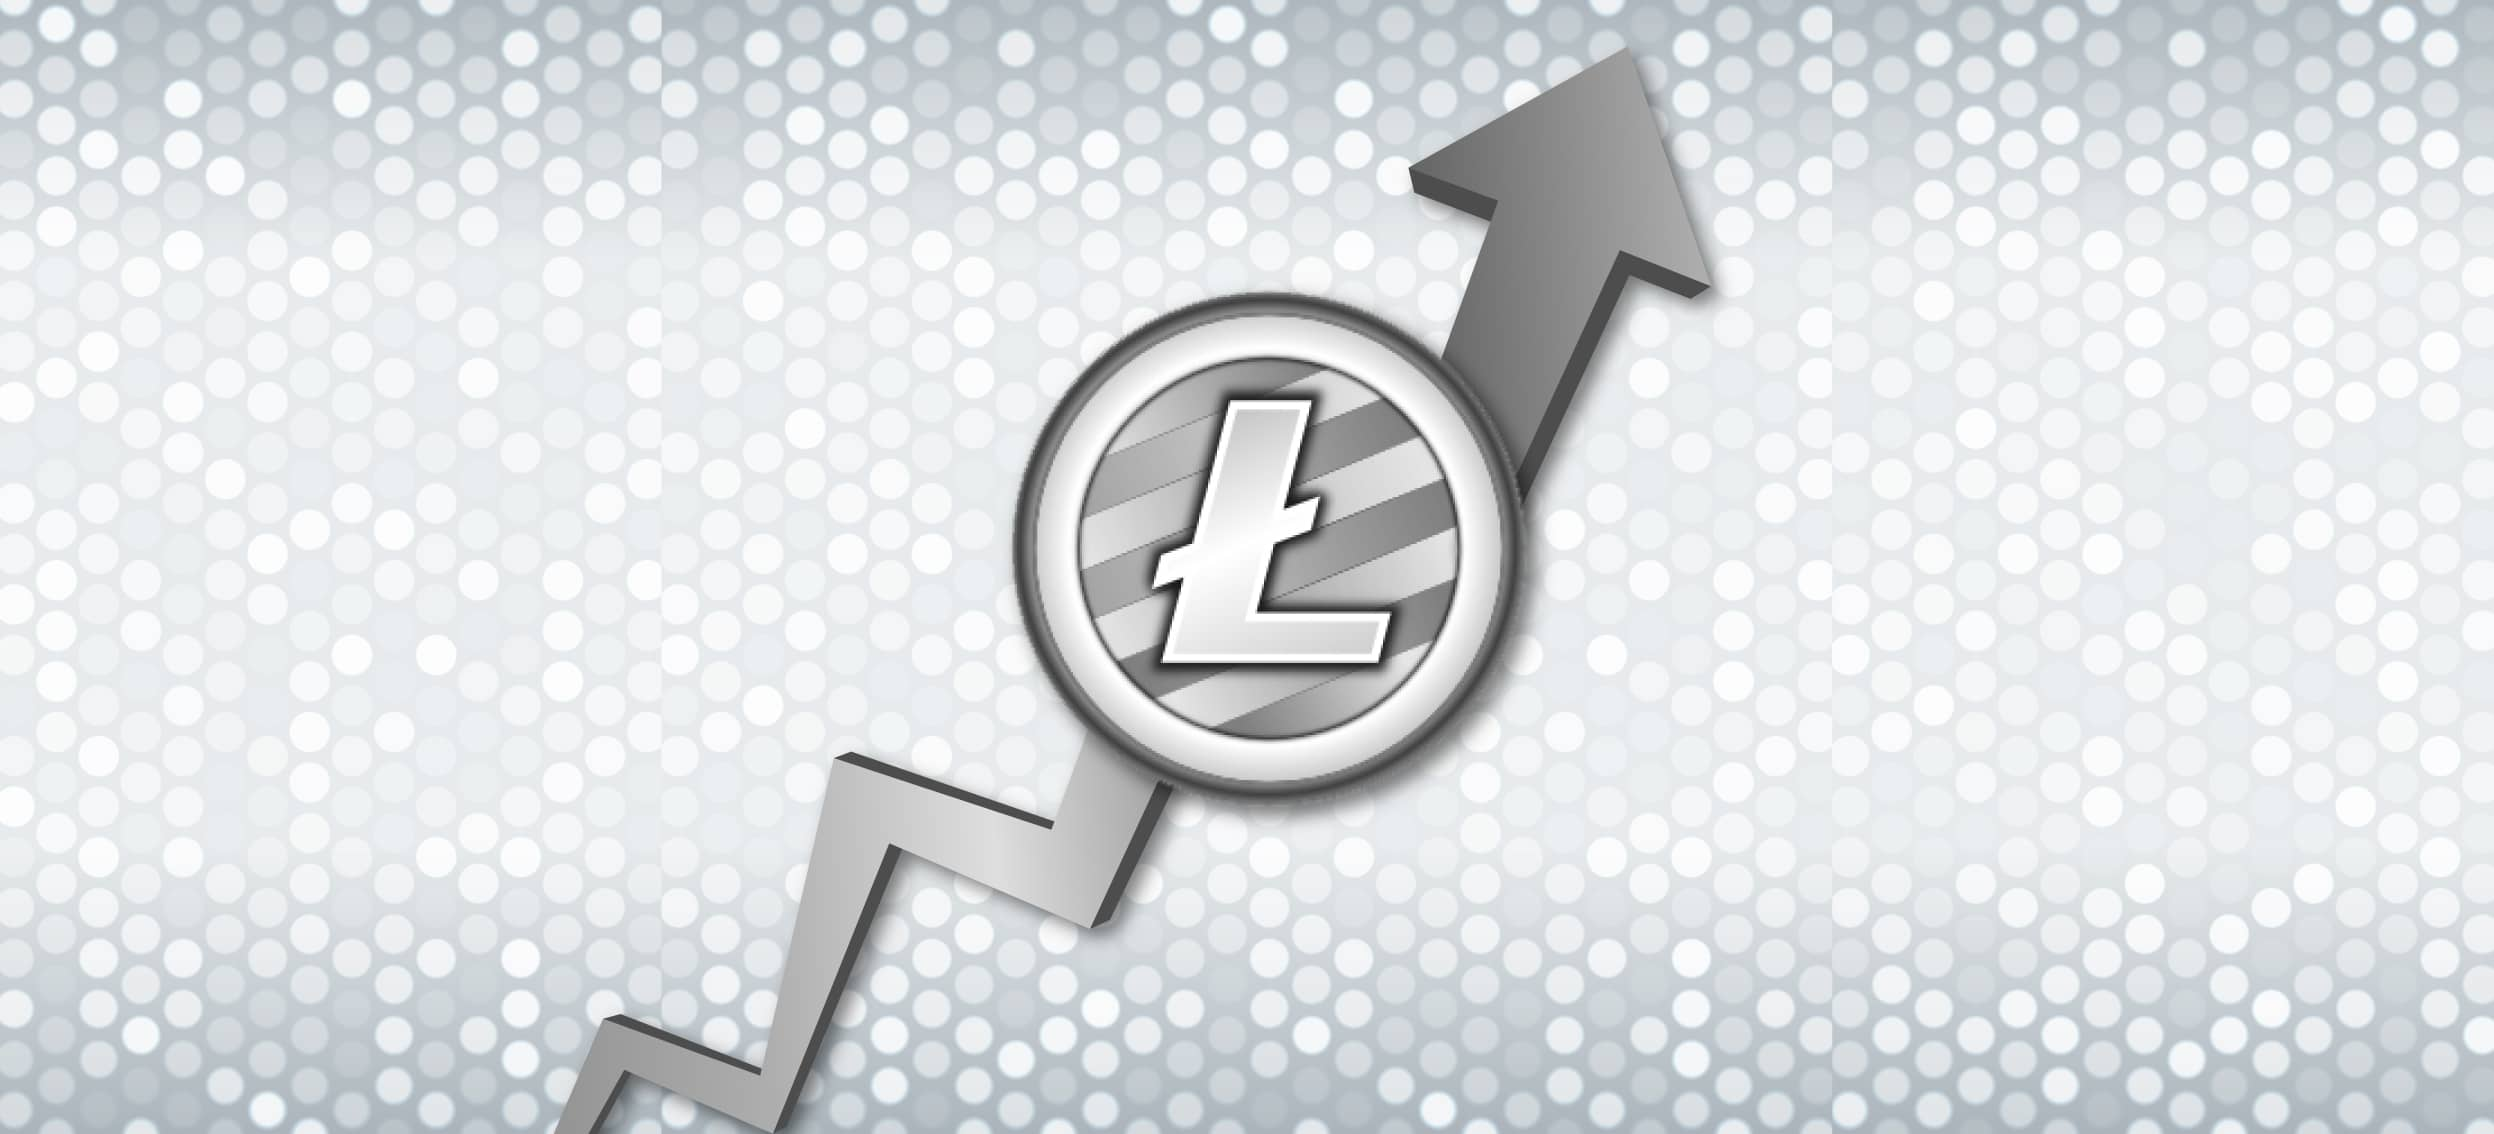 Litecoin price predictions: what is the trend for LTC?